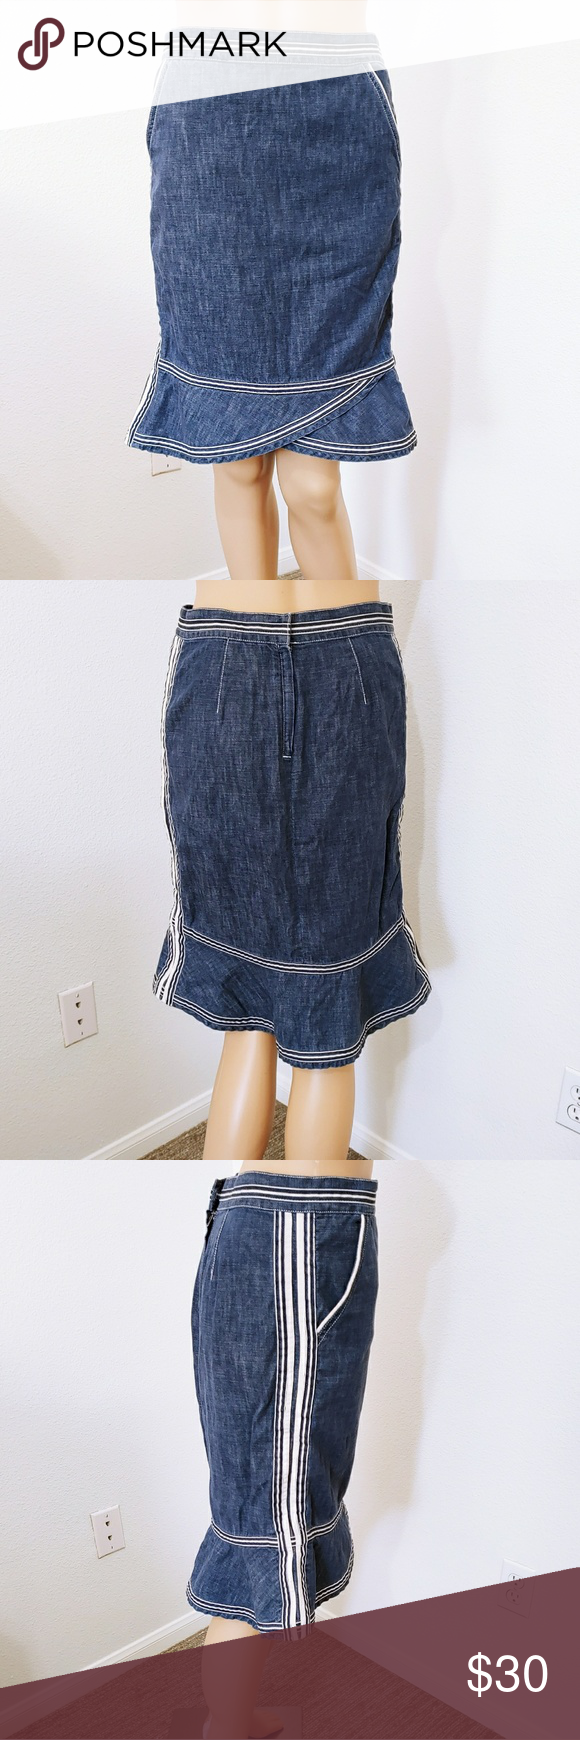 eebd41571 Marc Jacobs Denim Skirt I'm in love with this skirt. It's soft and ...